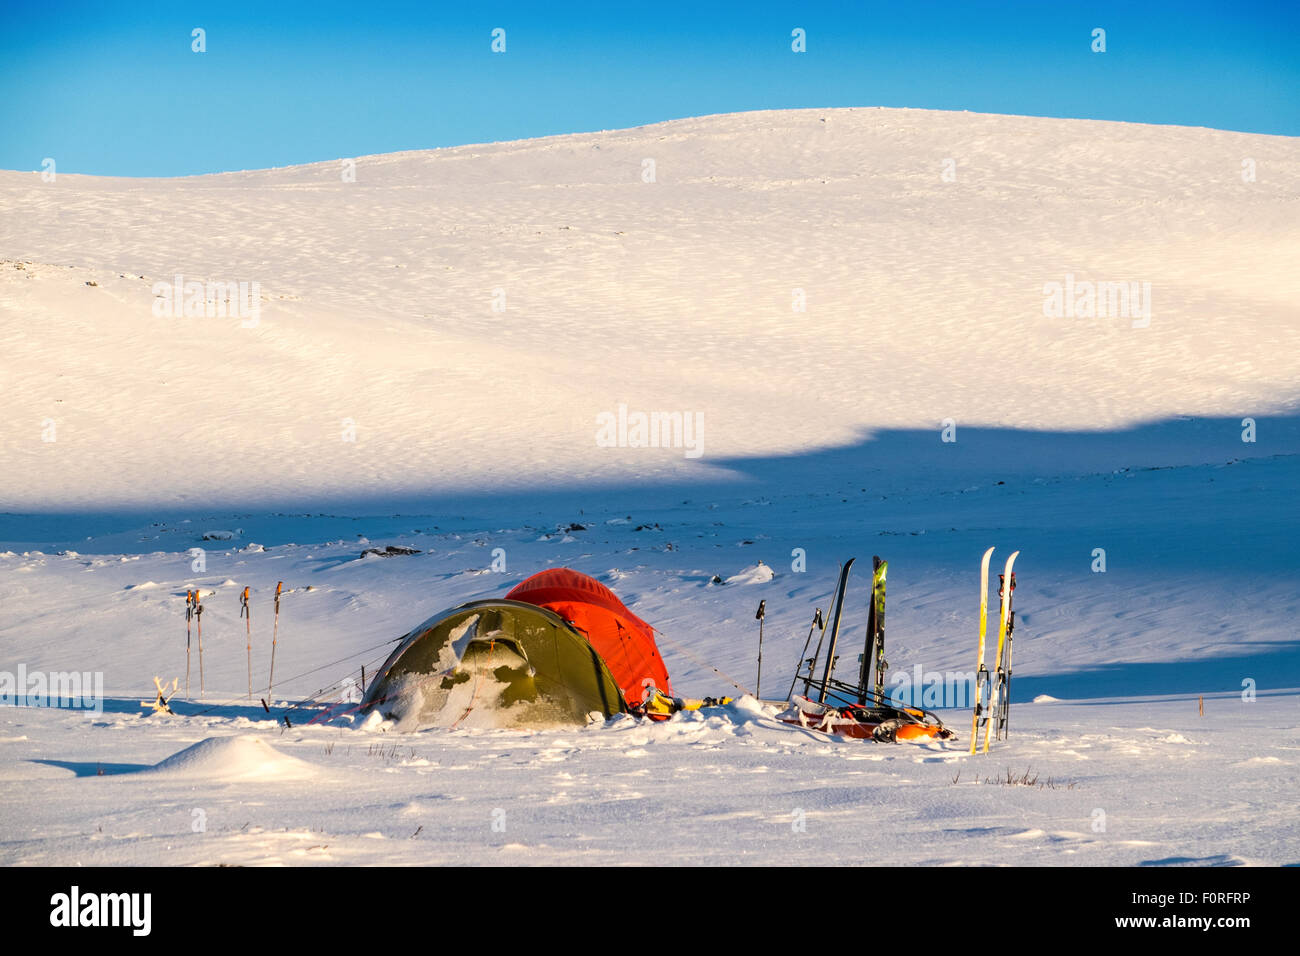 Ski-tourers  tents in the Dovre National Park, Norway - Stock Image